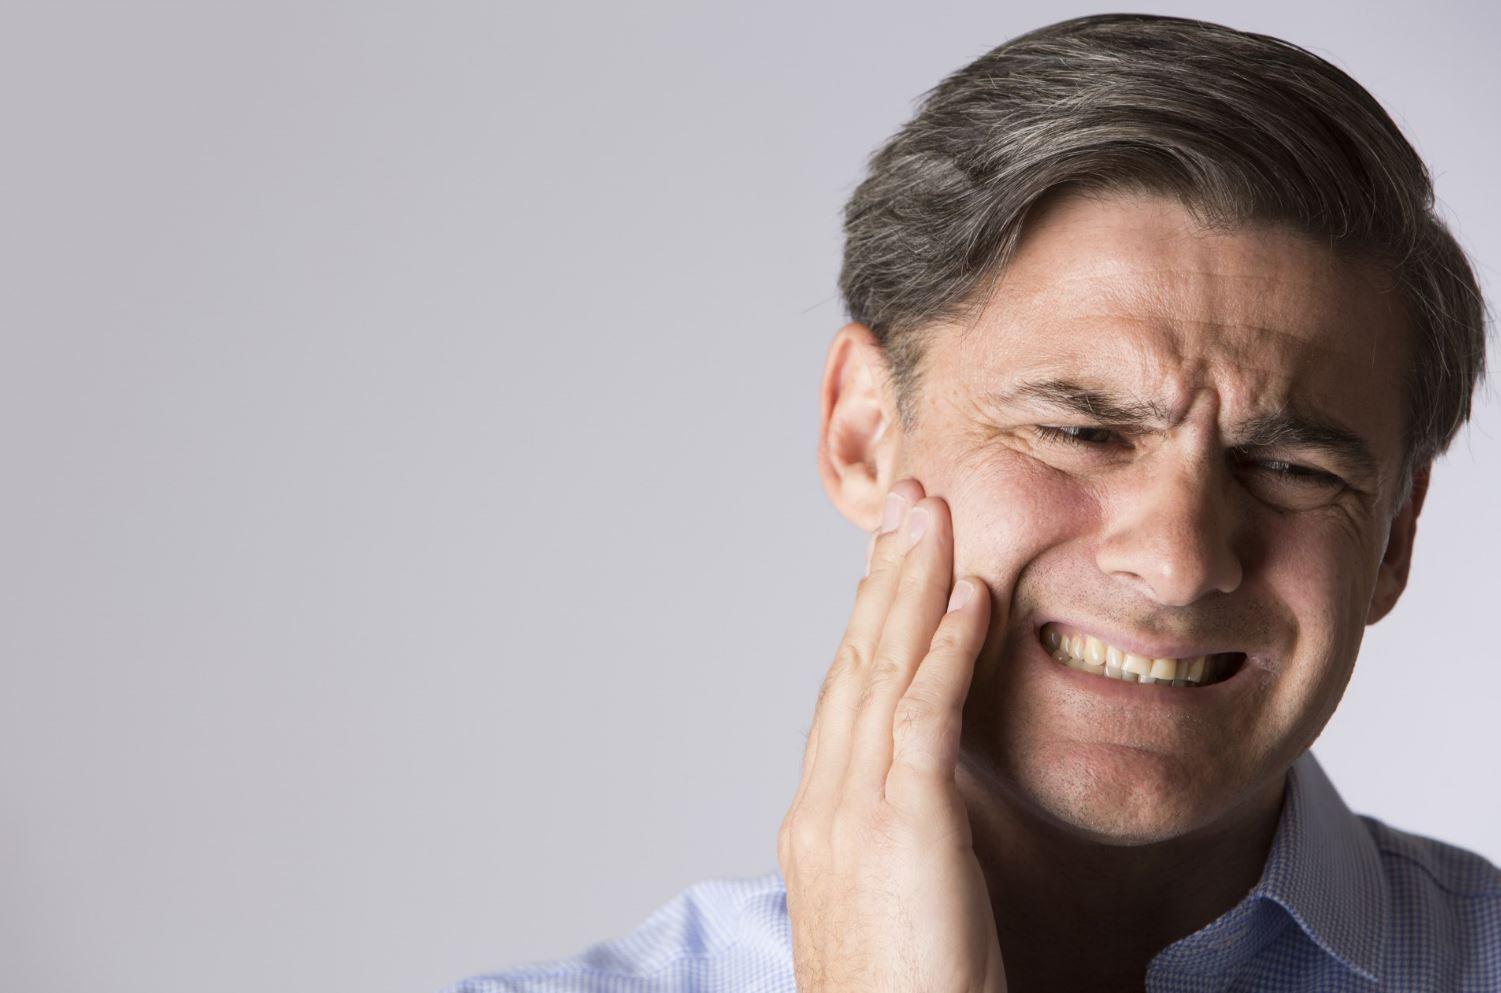 Are my teeth causing my jaw joint pain?